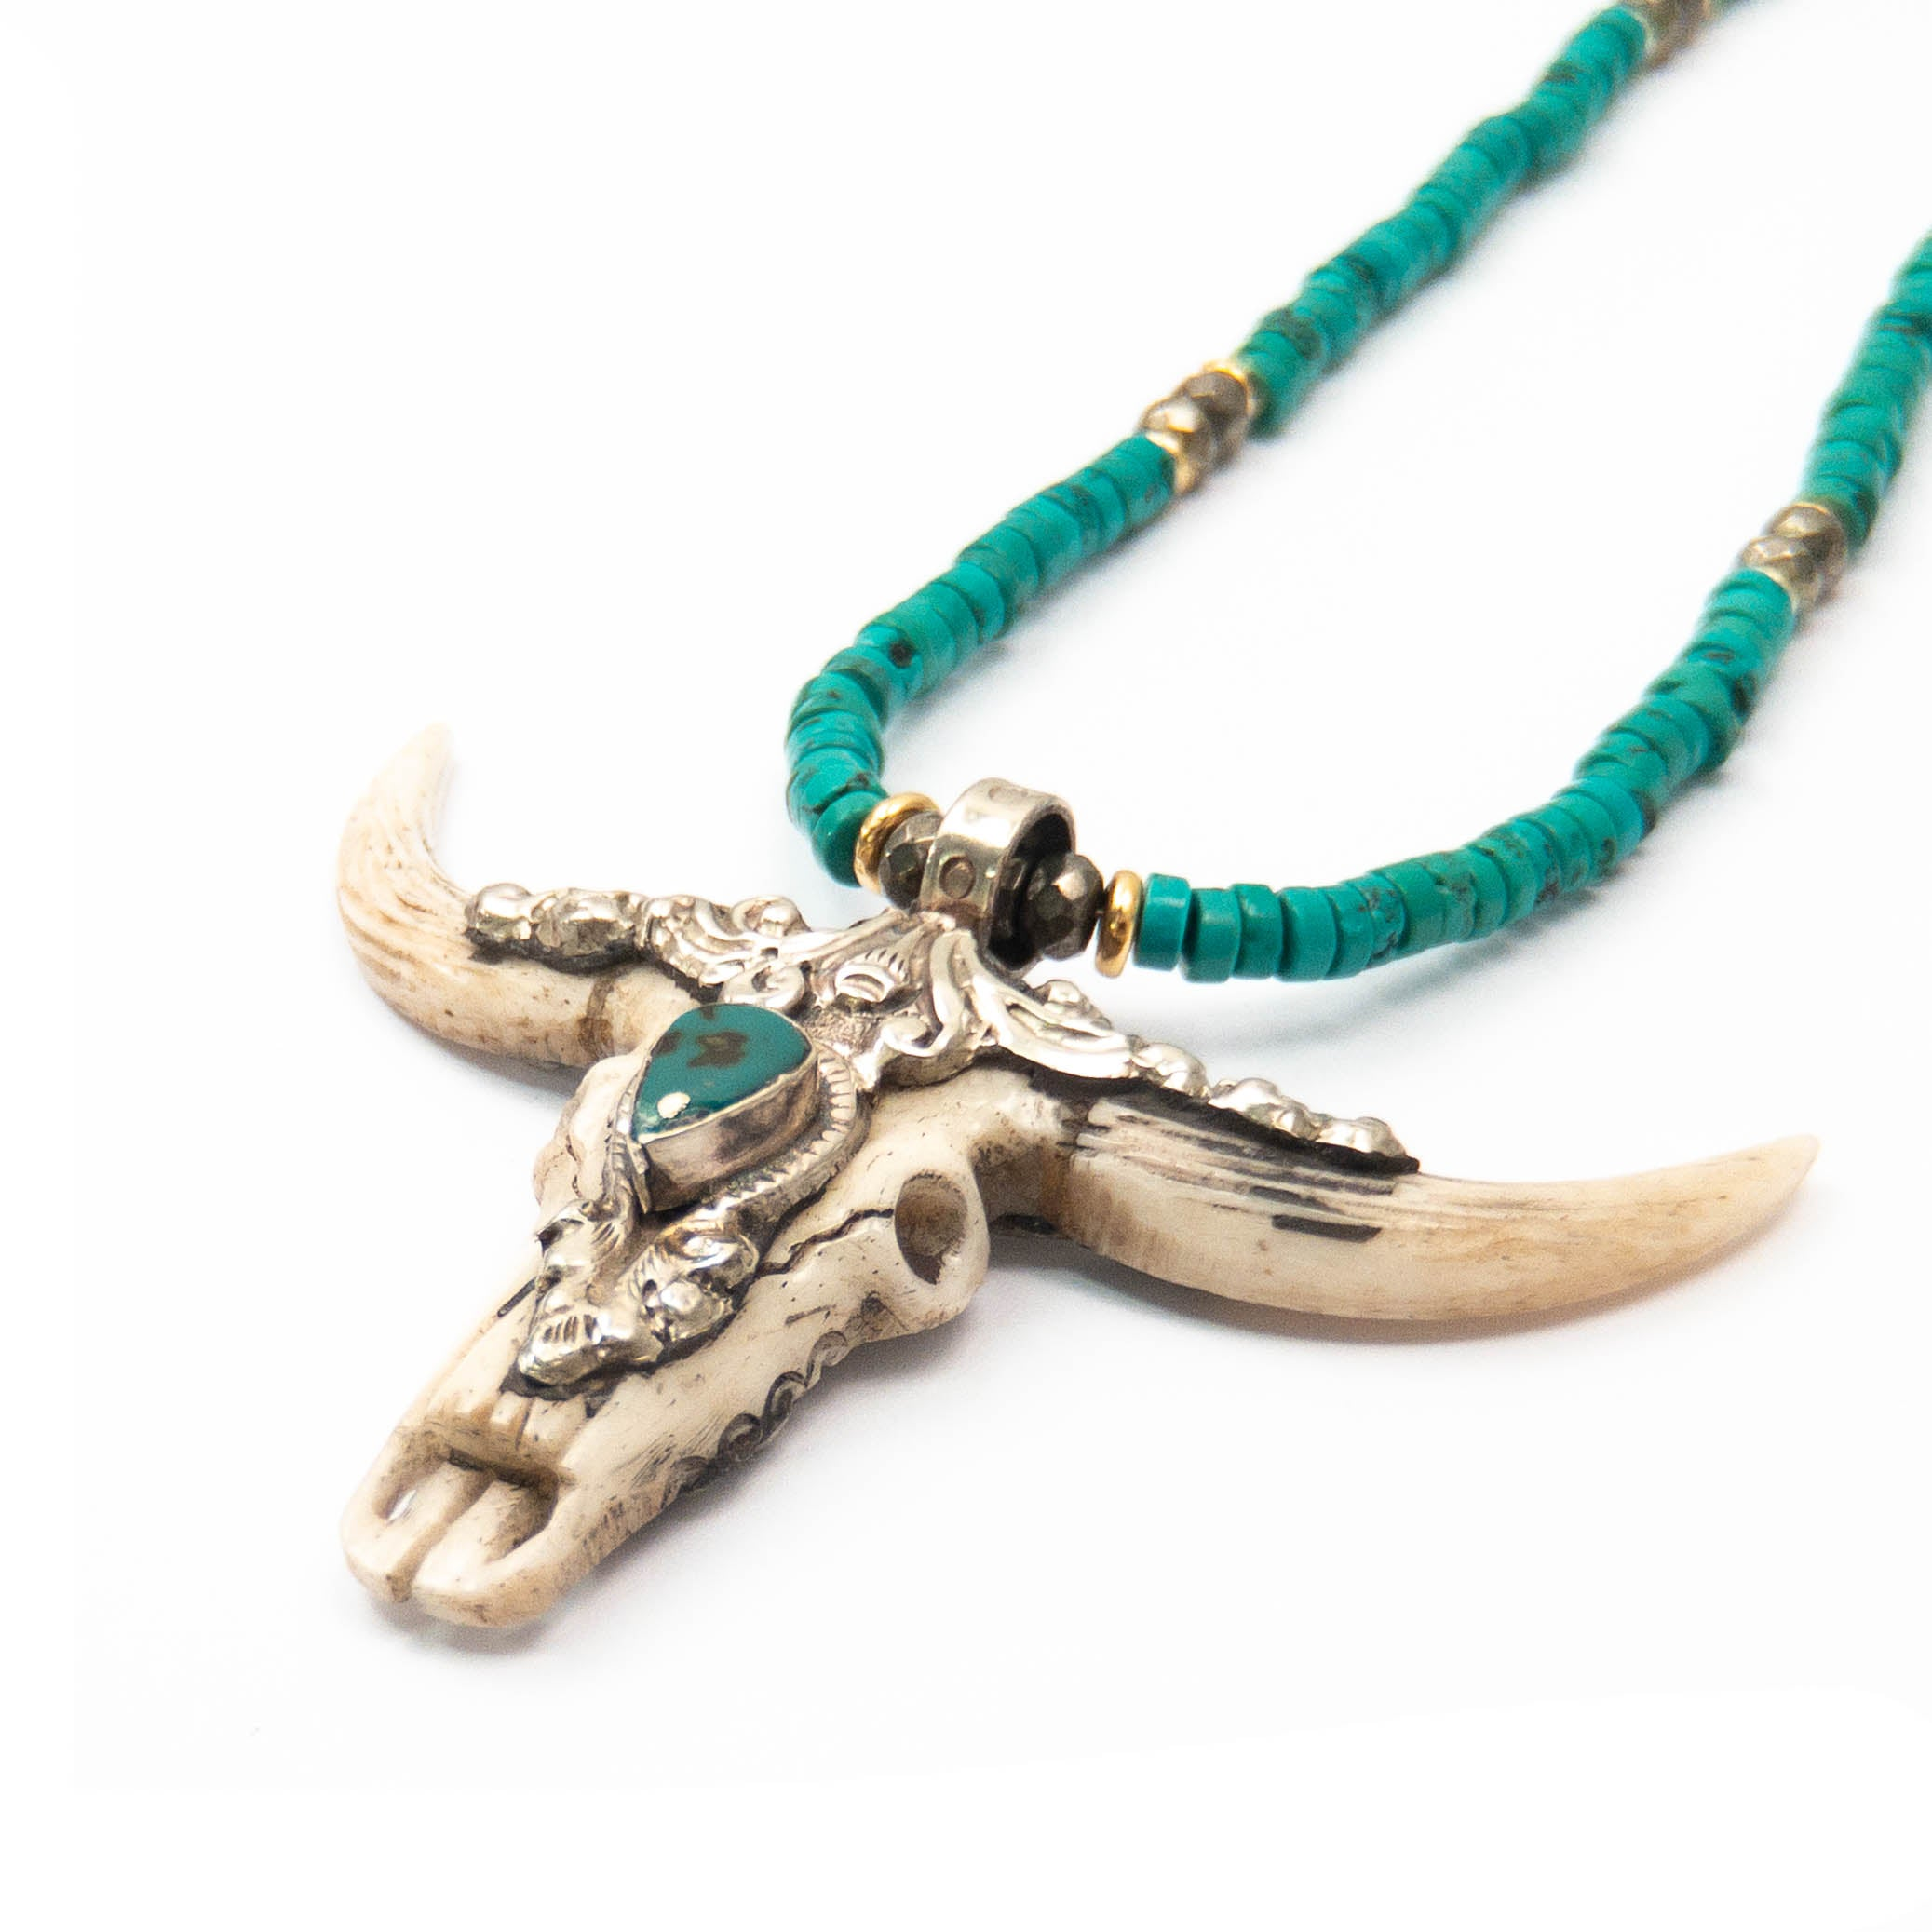 Nepali Repousse Longhorn Skull Pendant on Green Turquosie Necklace